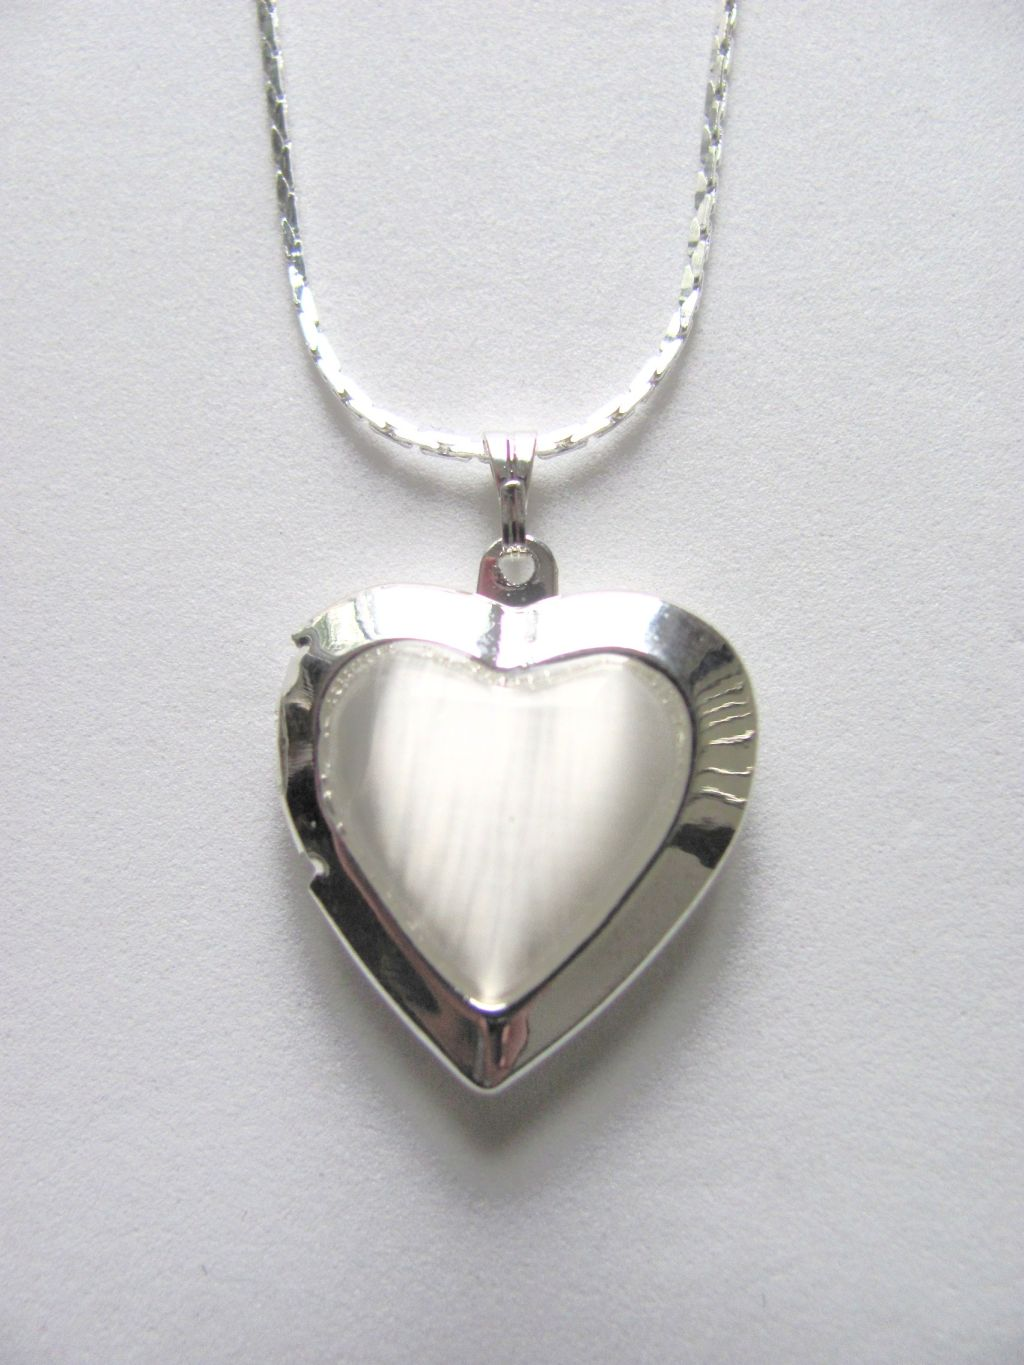 Arctic Pearl Heart Locket Photo Pendant Necklace, Silver Tone